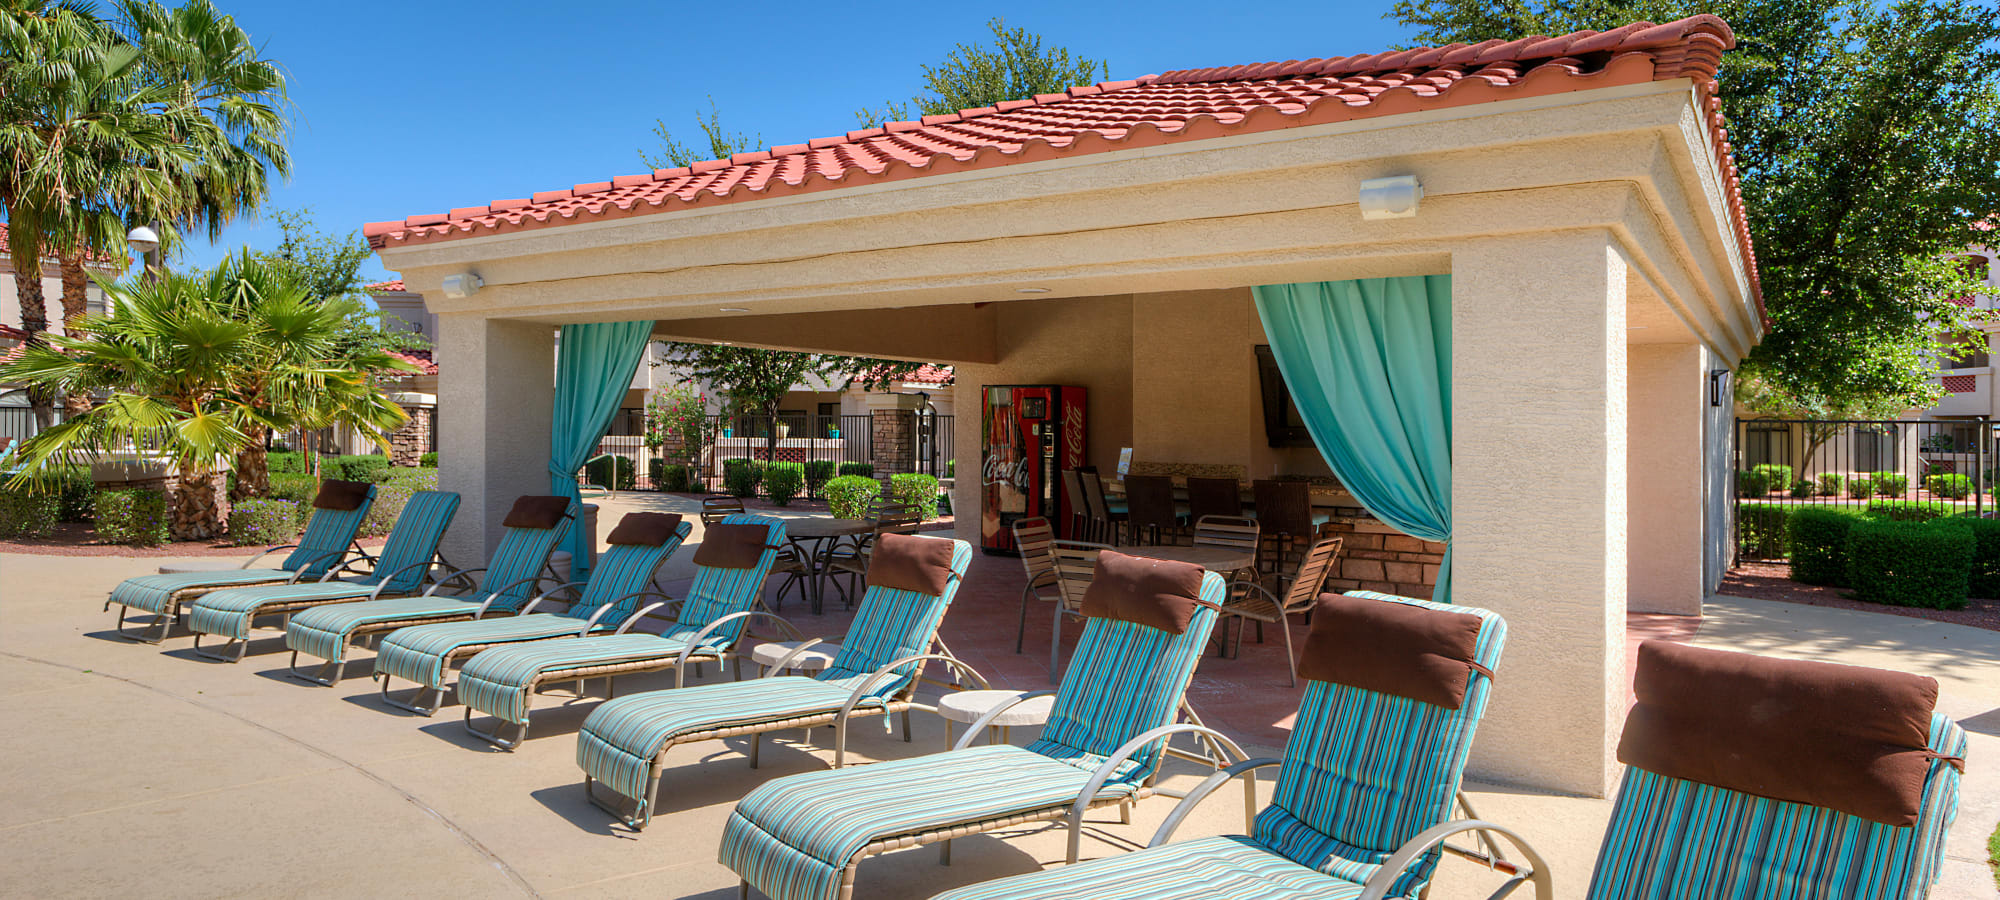 Poolside lounge chairs at San Cervantes in Chandler, Arizona